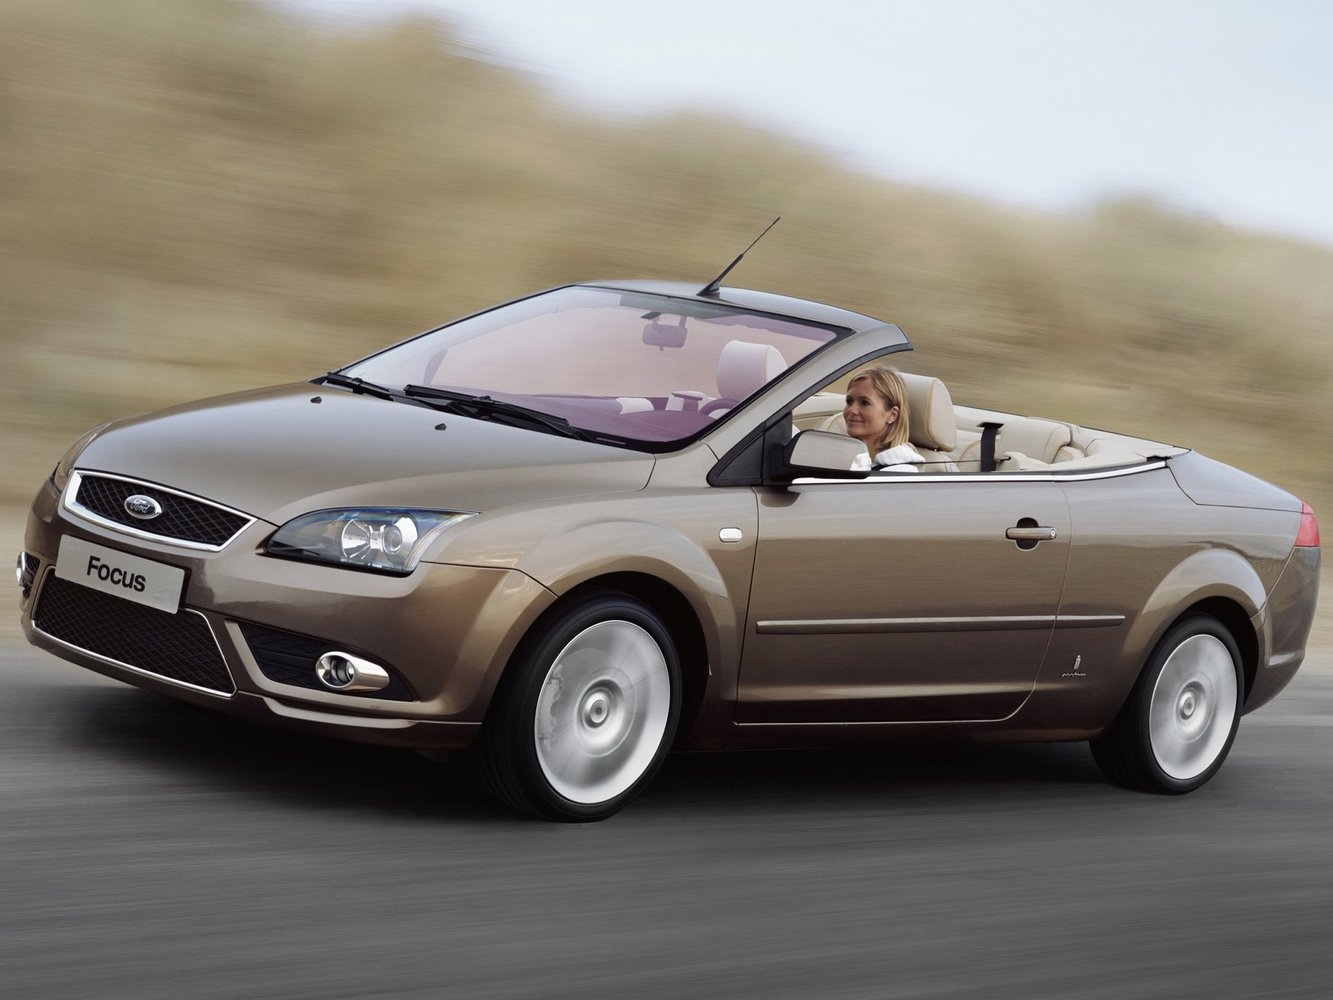 Ford Focus Coupe-Cabriolet (Форд Фокус Купе-Кабриолет ...